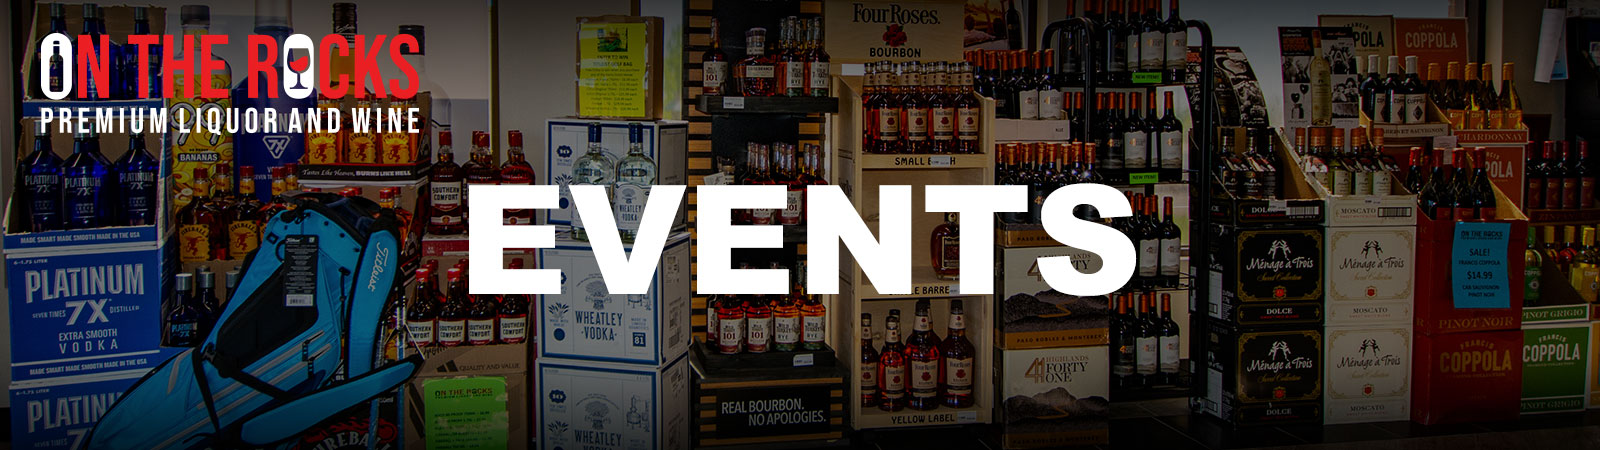 On-The-Rocks-Premium-Liquor-and-Wine-St.-Charles-Events-Page-Banner